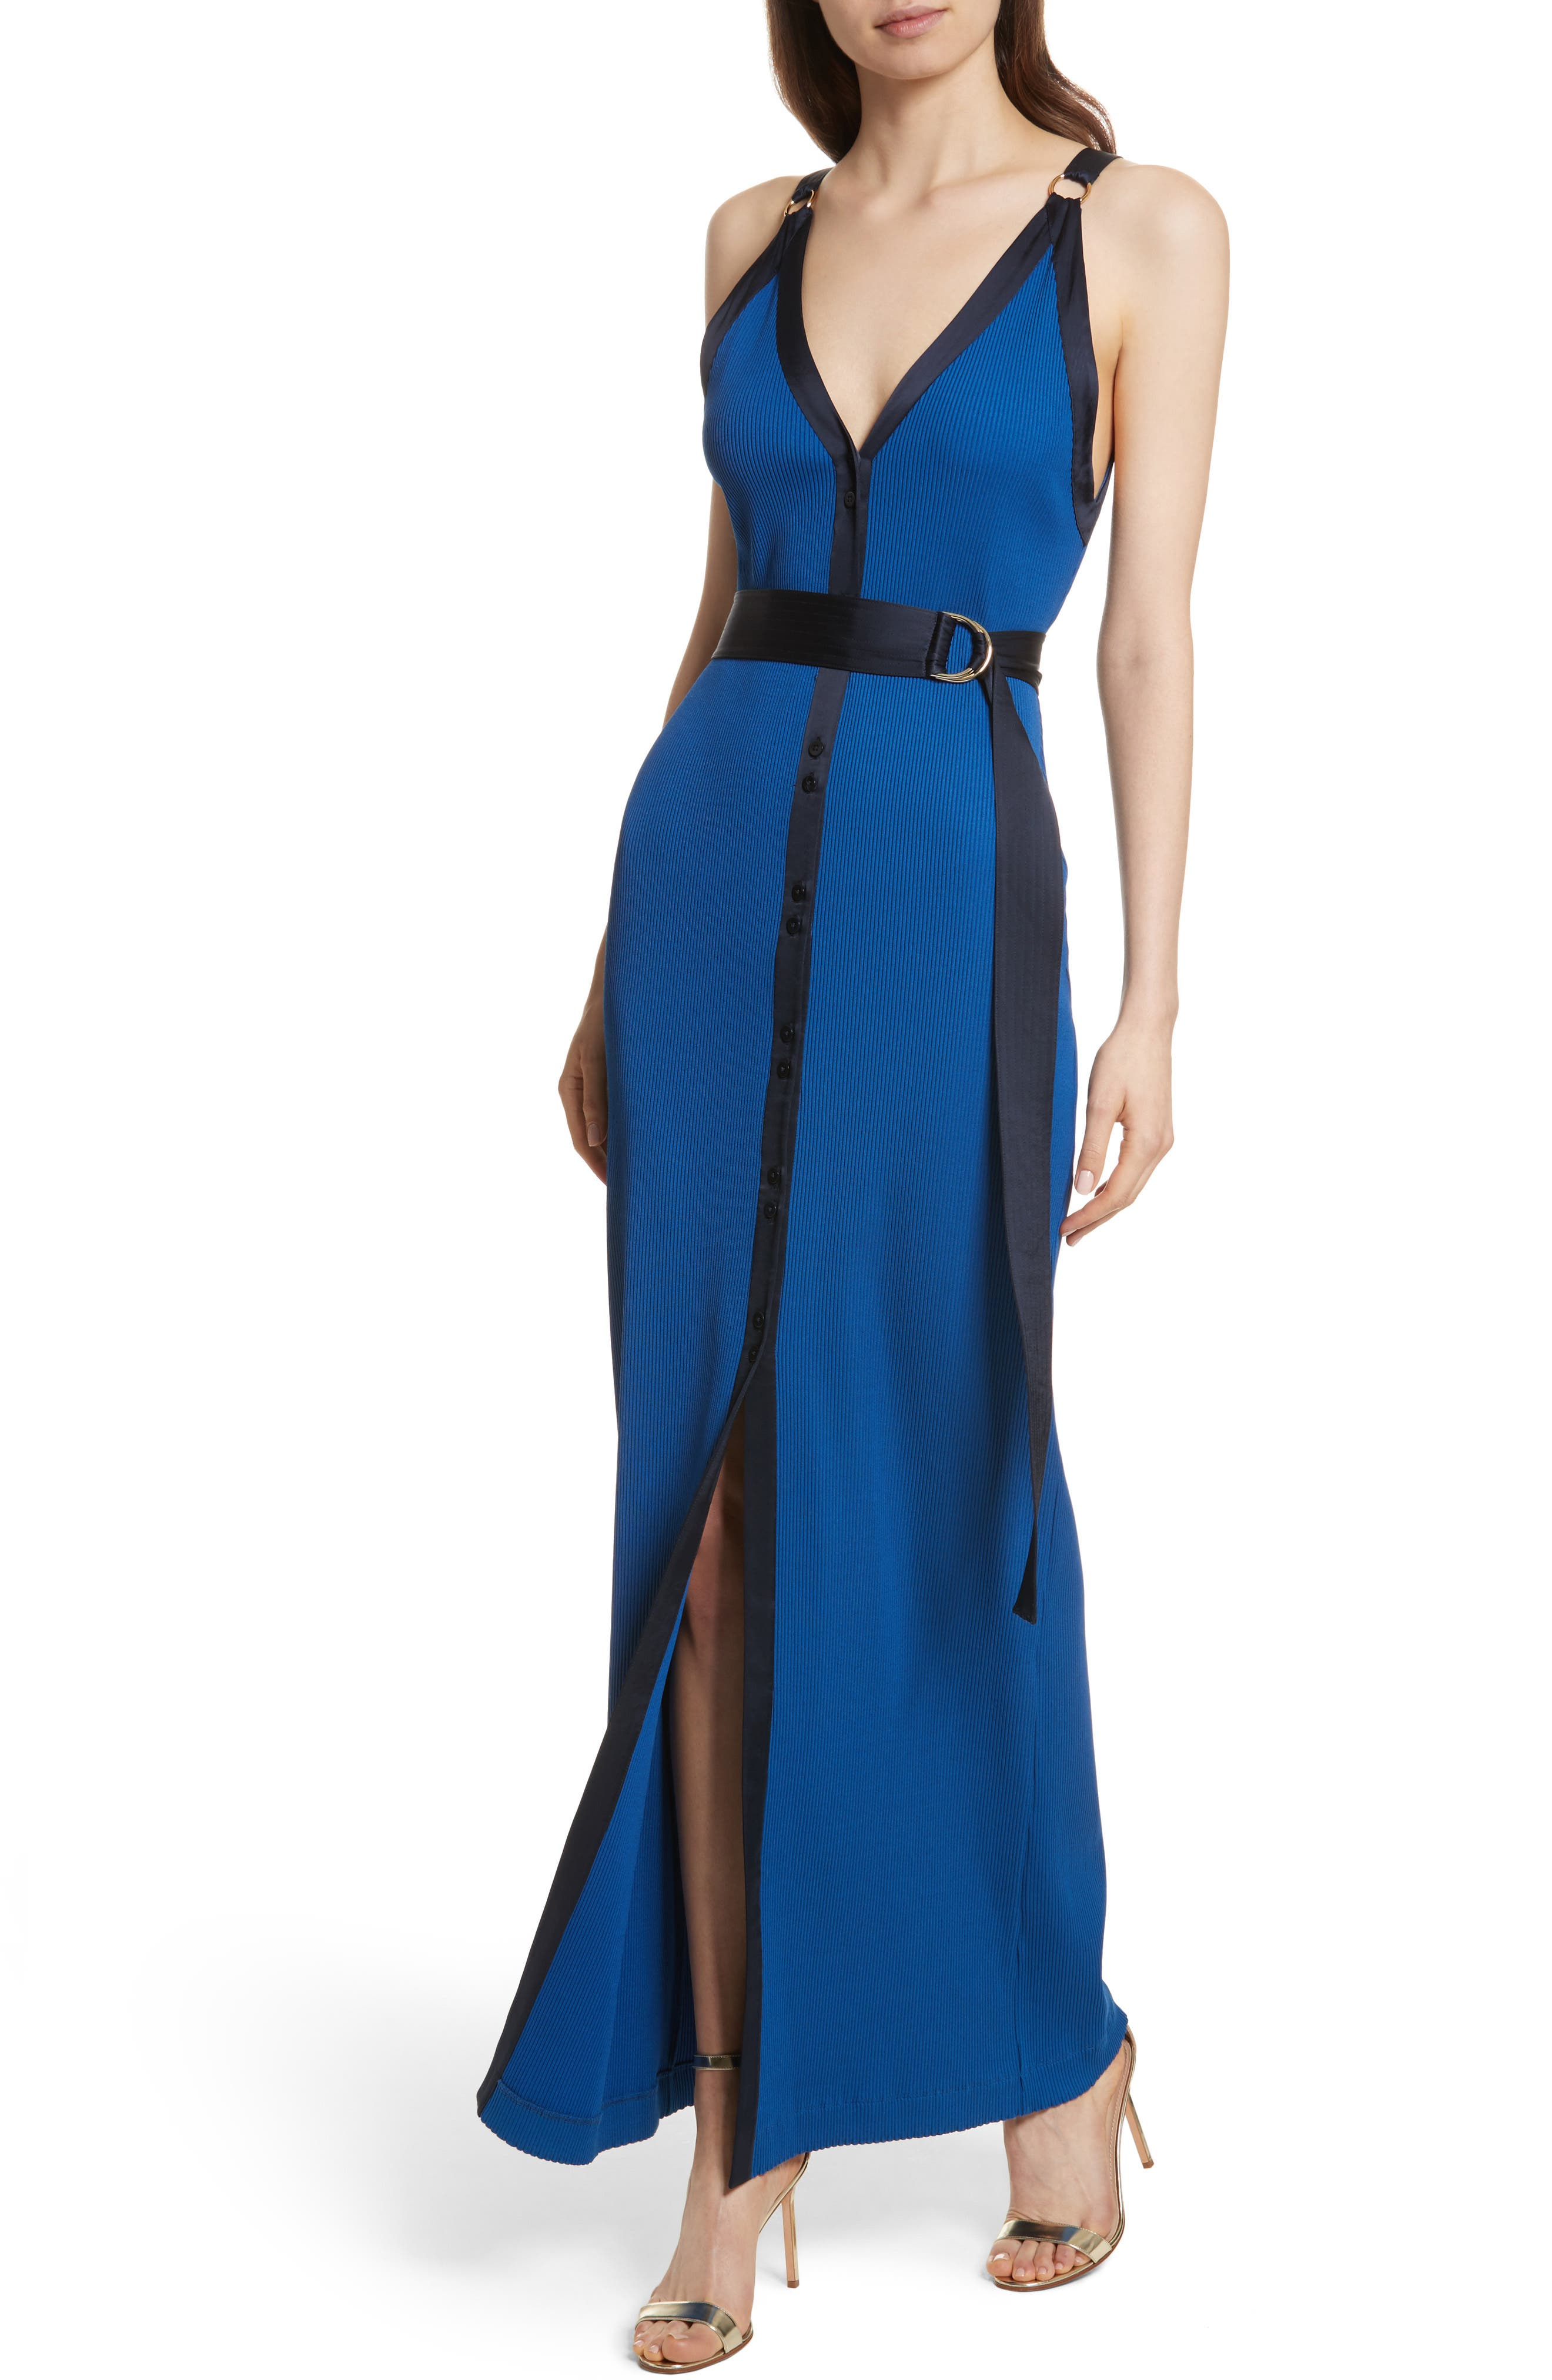 Diane von Furstenberg Ribbed Jersey Maxi Dress,                             Alternate thumbnail 4, color,                             Cove/ Alexander Navy